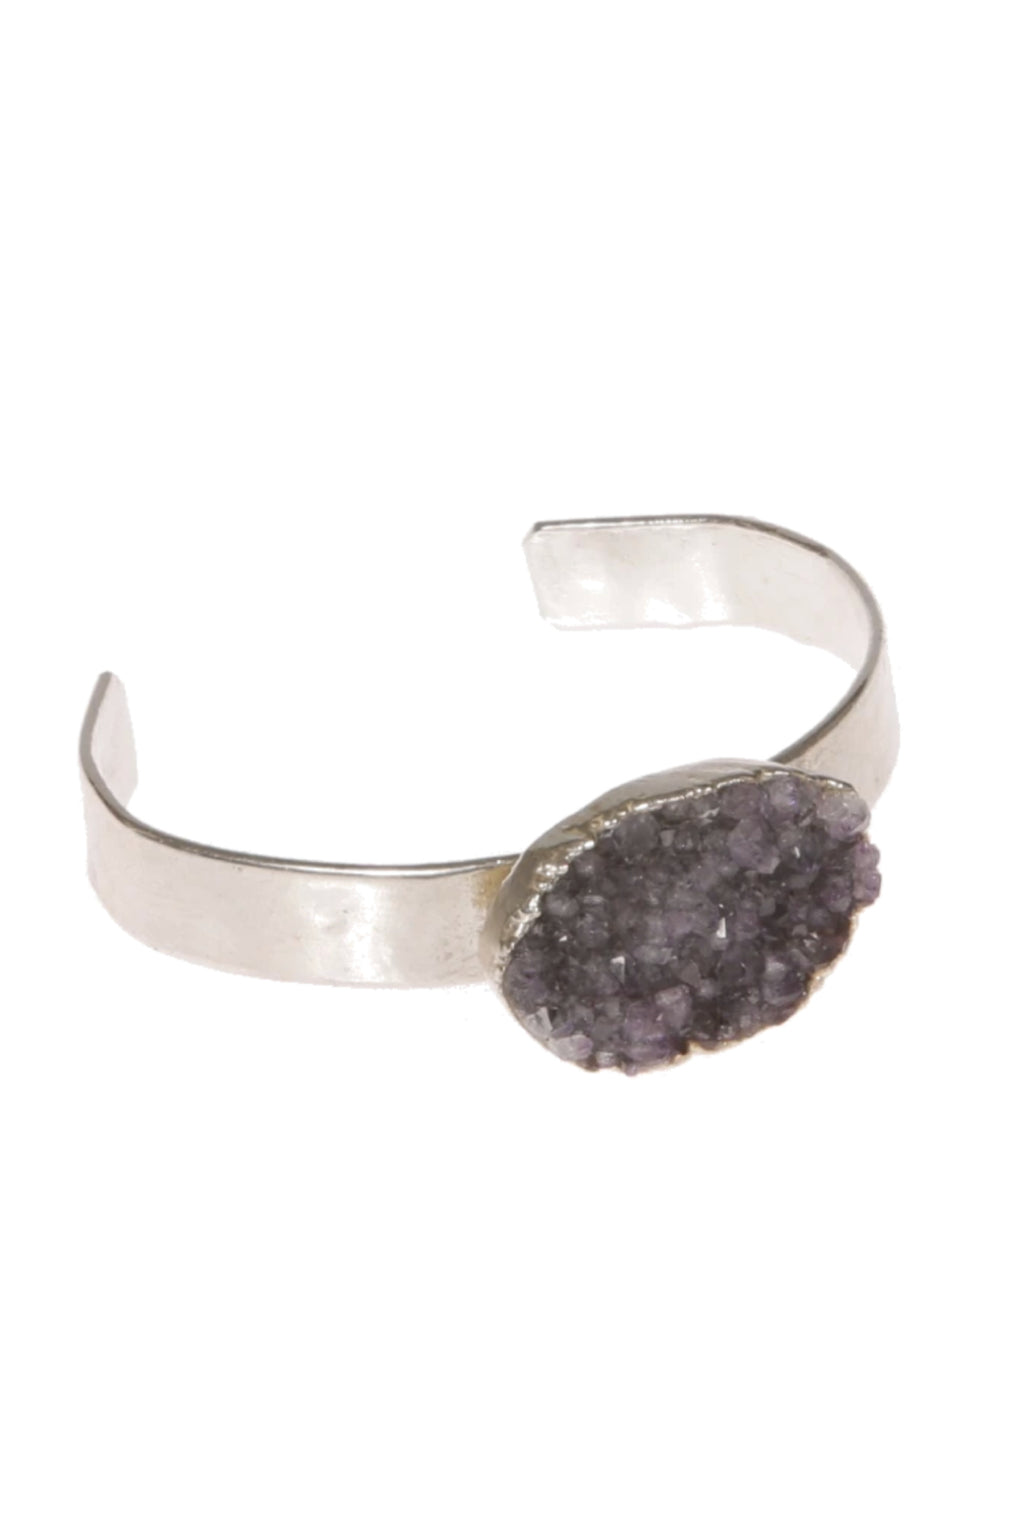 DUG UP NEW YORK | Oval Druzy Agate Silver Cuff Bracelet